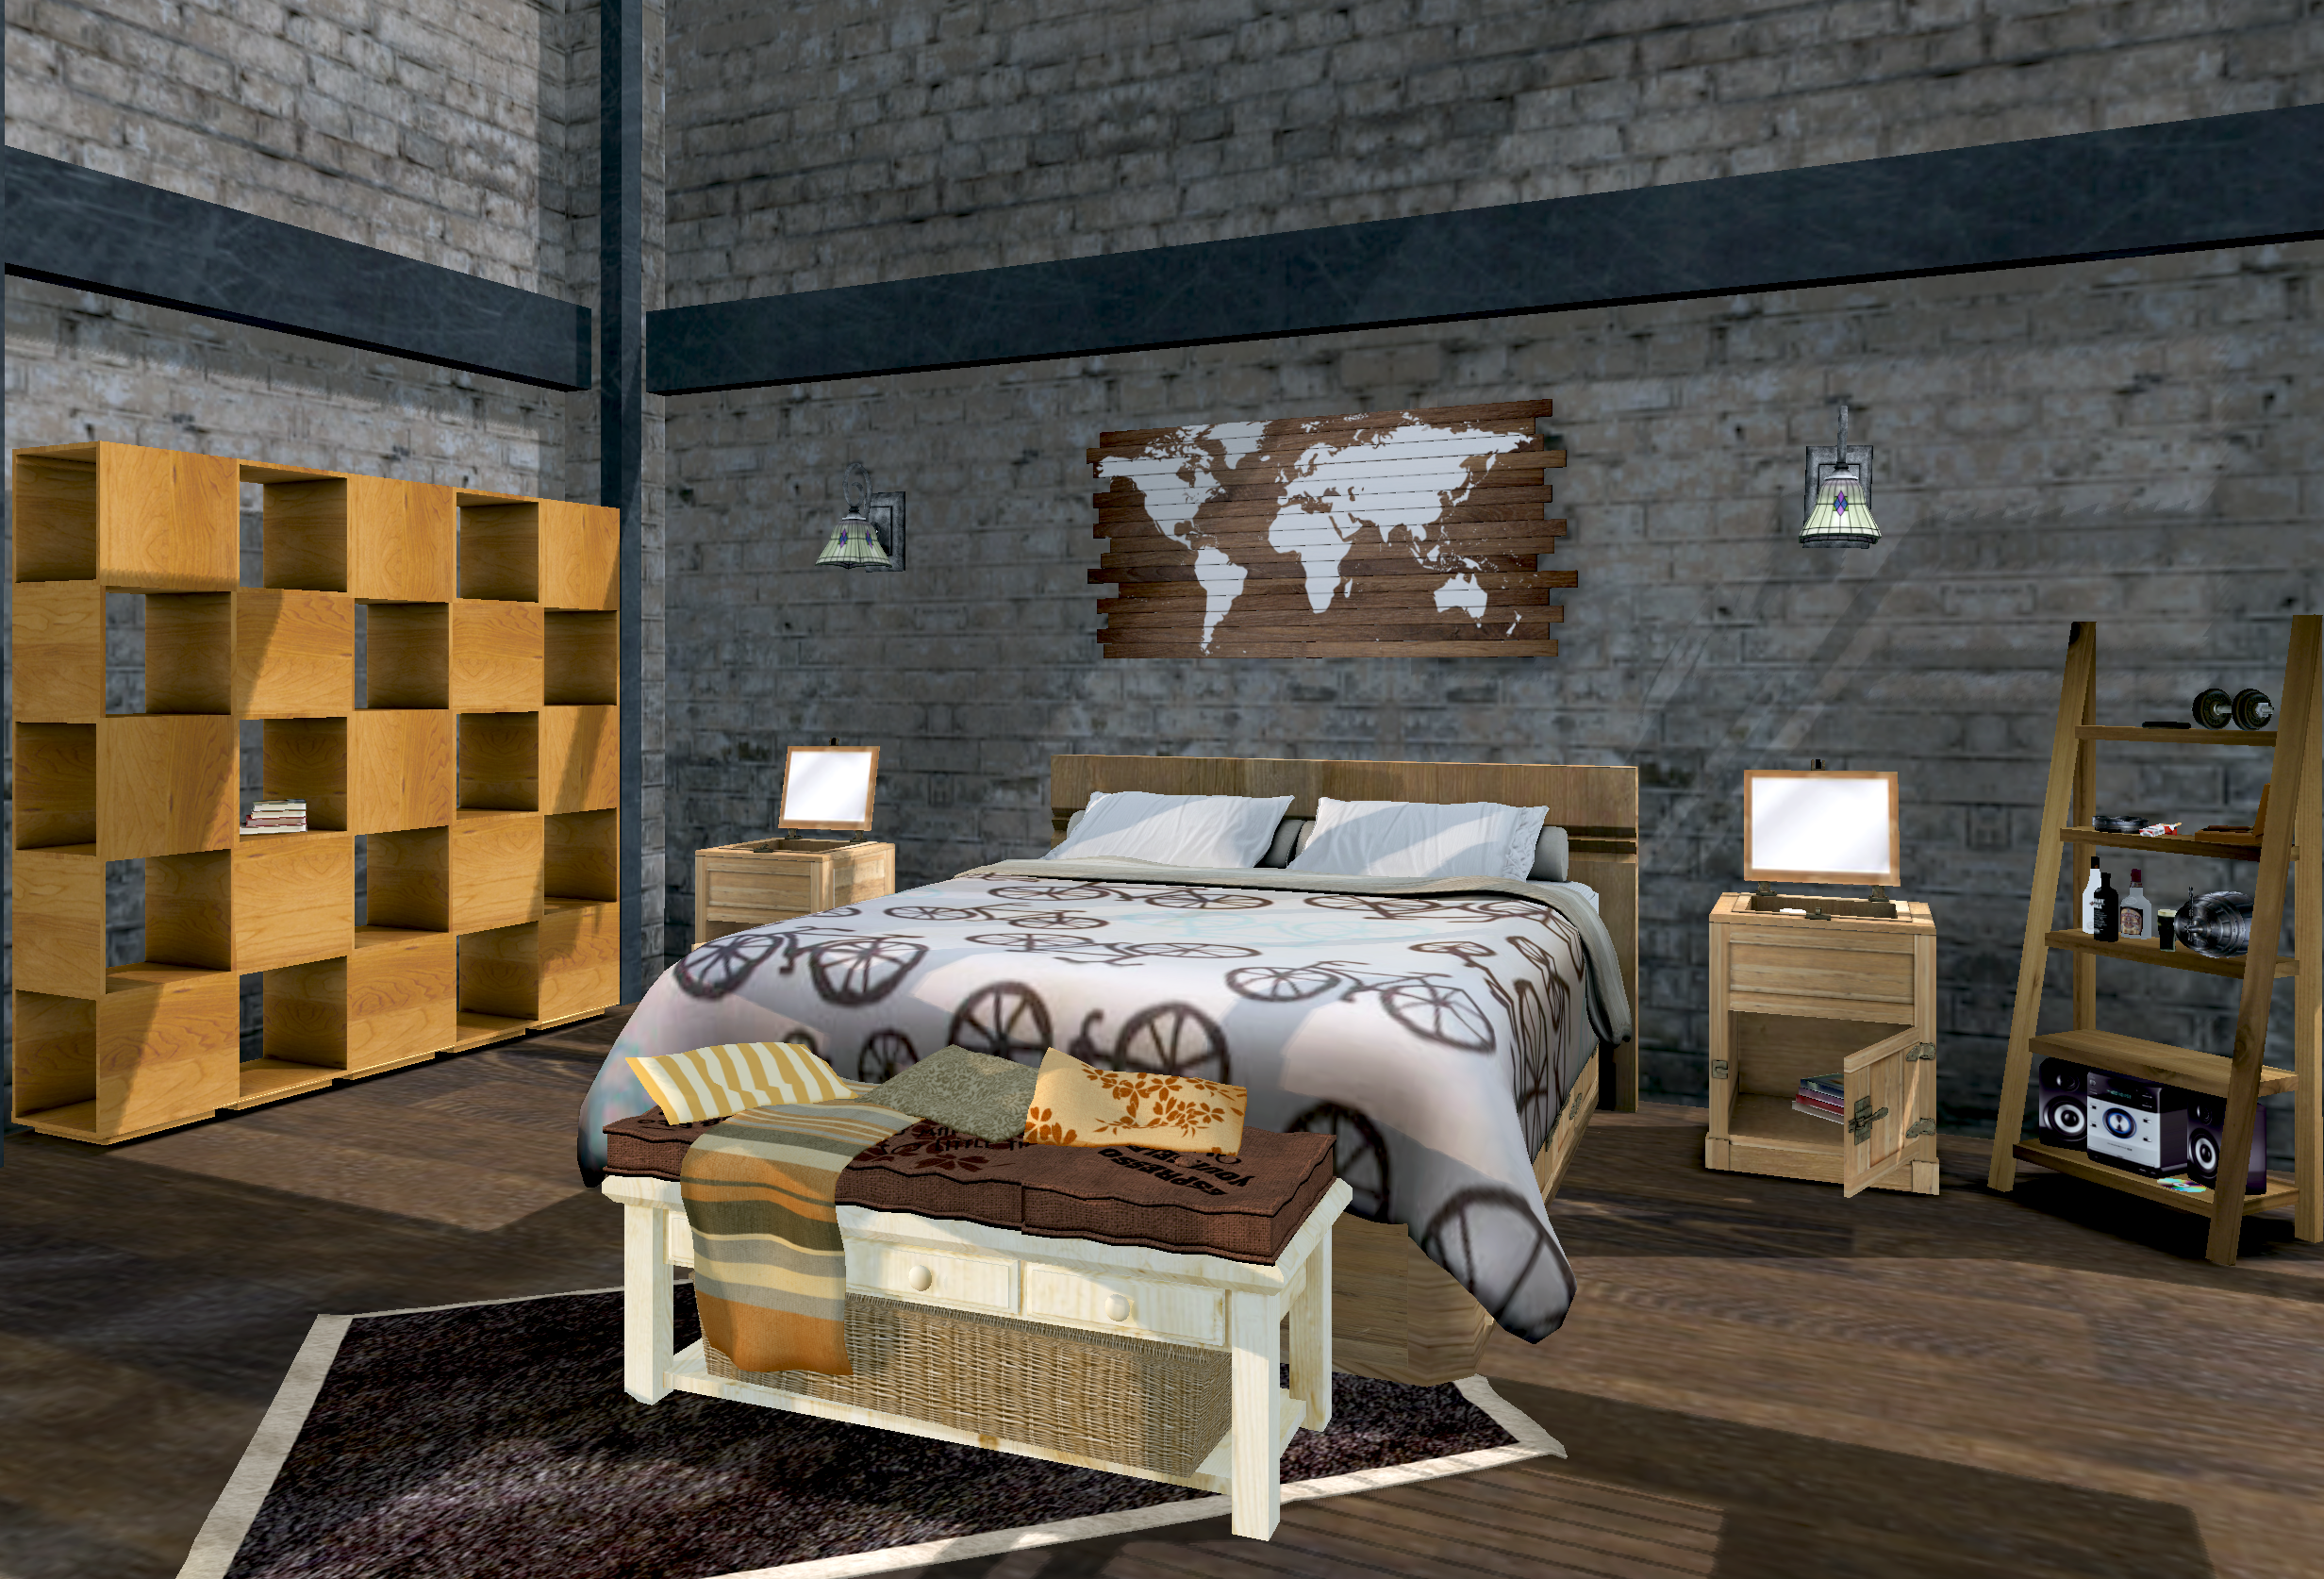 Industrial Style Bedroom Furniture  Industrial Bedroom Design   industrial style bedroom furniture  bedroom draft industrial style  furniture w. Industrial Style Bedroom. Home Design Ideas